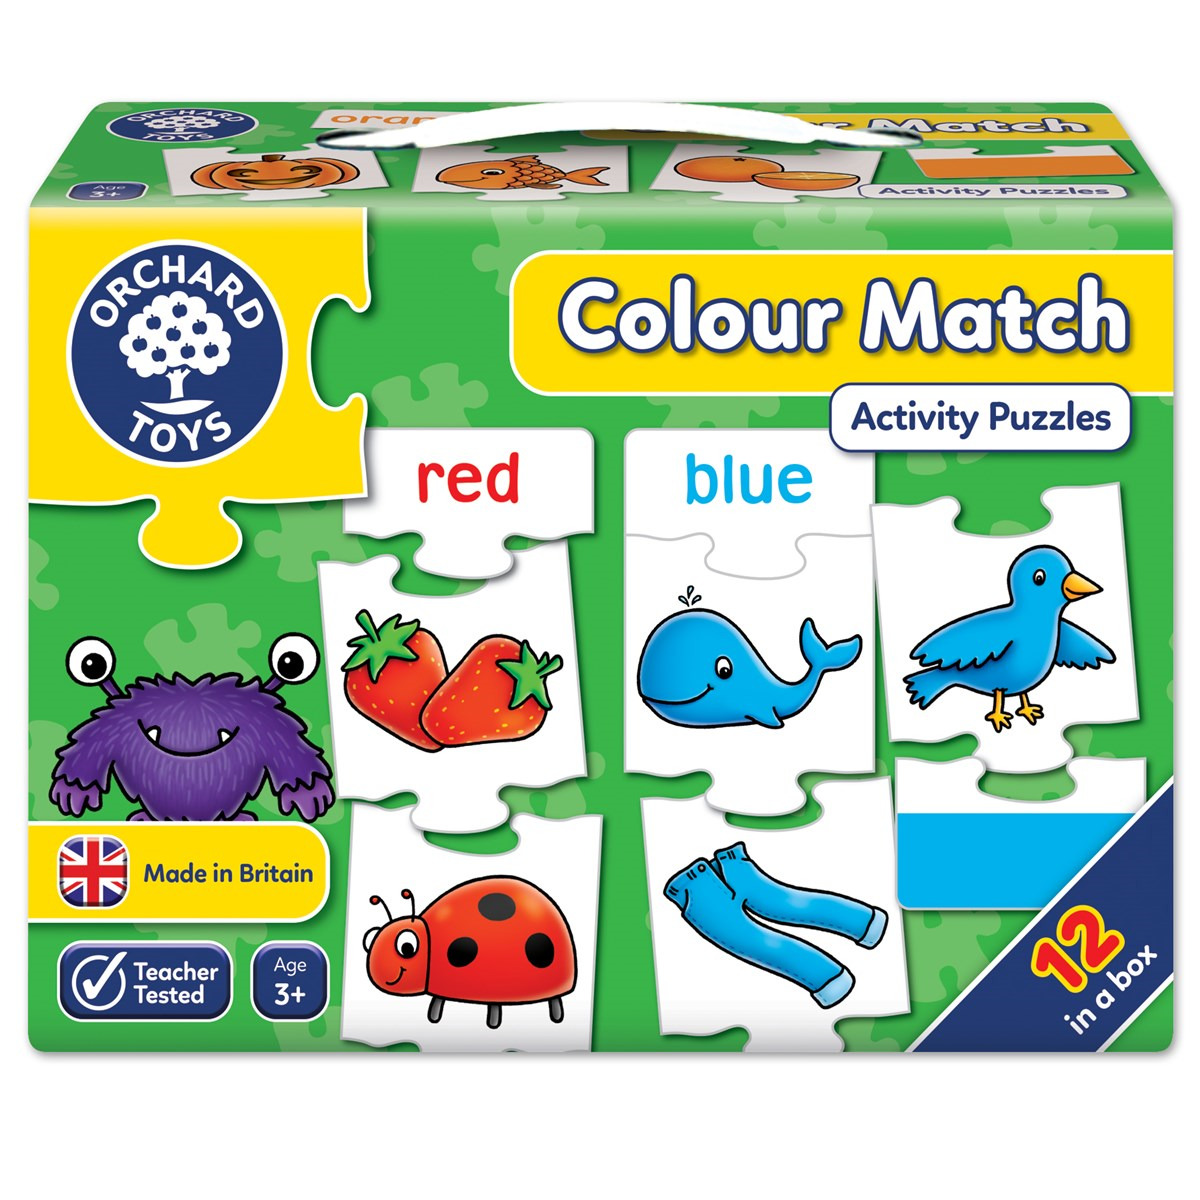 COLOUR MATCH ORCHARD Toys Game Educational Preschool Learning Fun ...